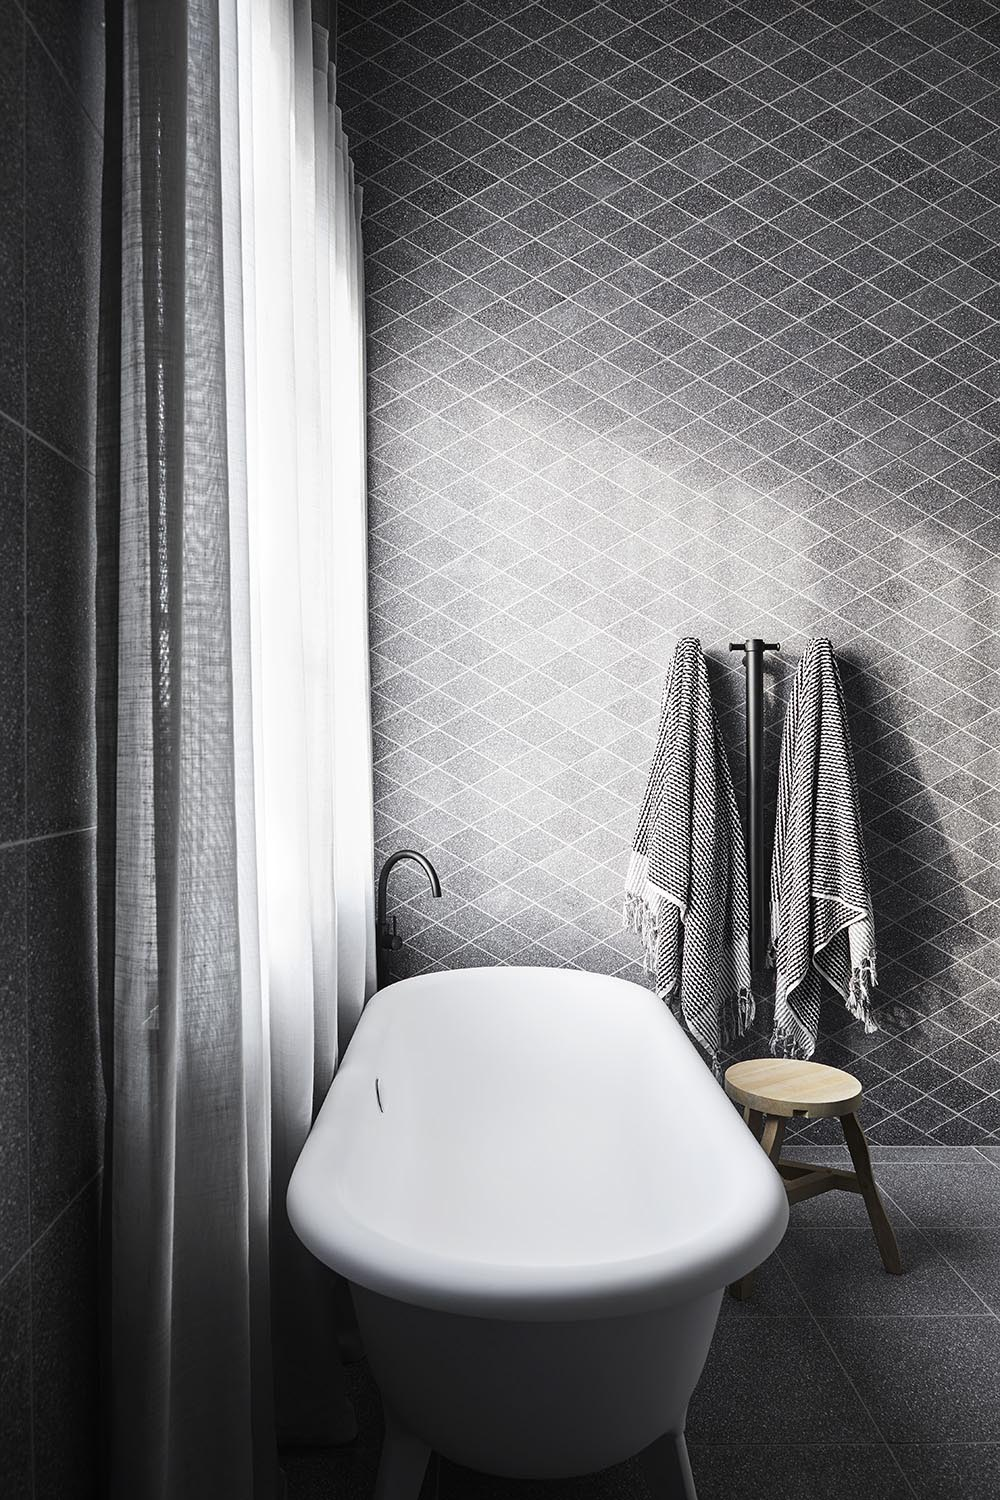 This modern main en-suite bathroom features a wall of custom diamond-cut terrazzo, a geometric shift designed to surprise and relieve the eye, while the Ottocento bath by Agape rests below the window.